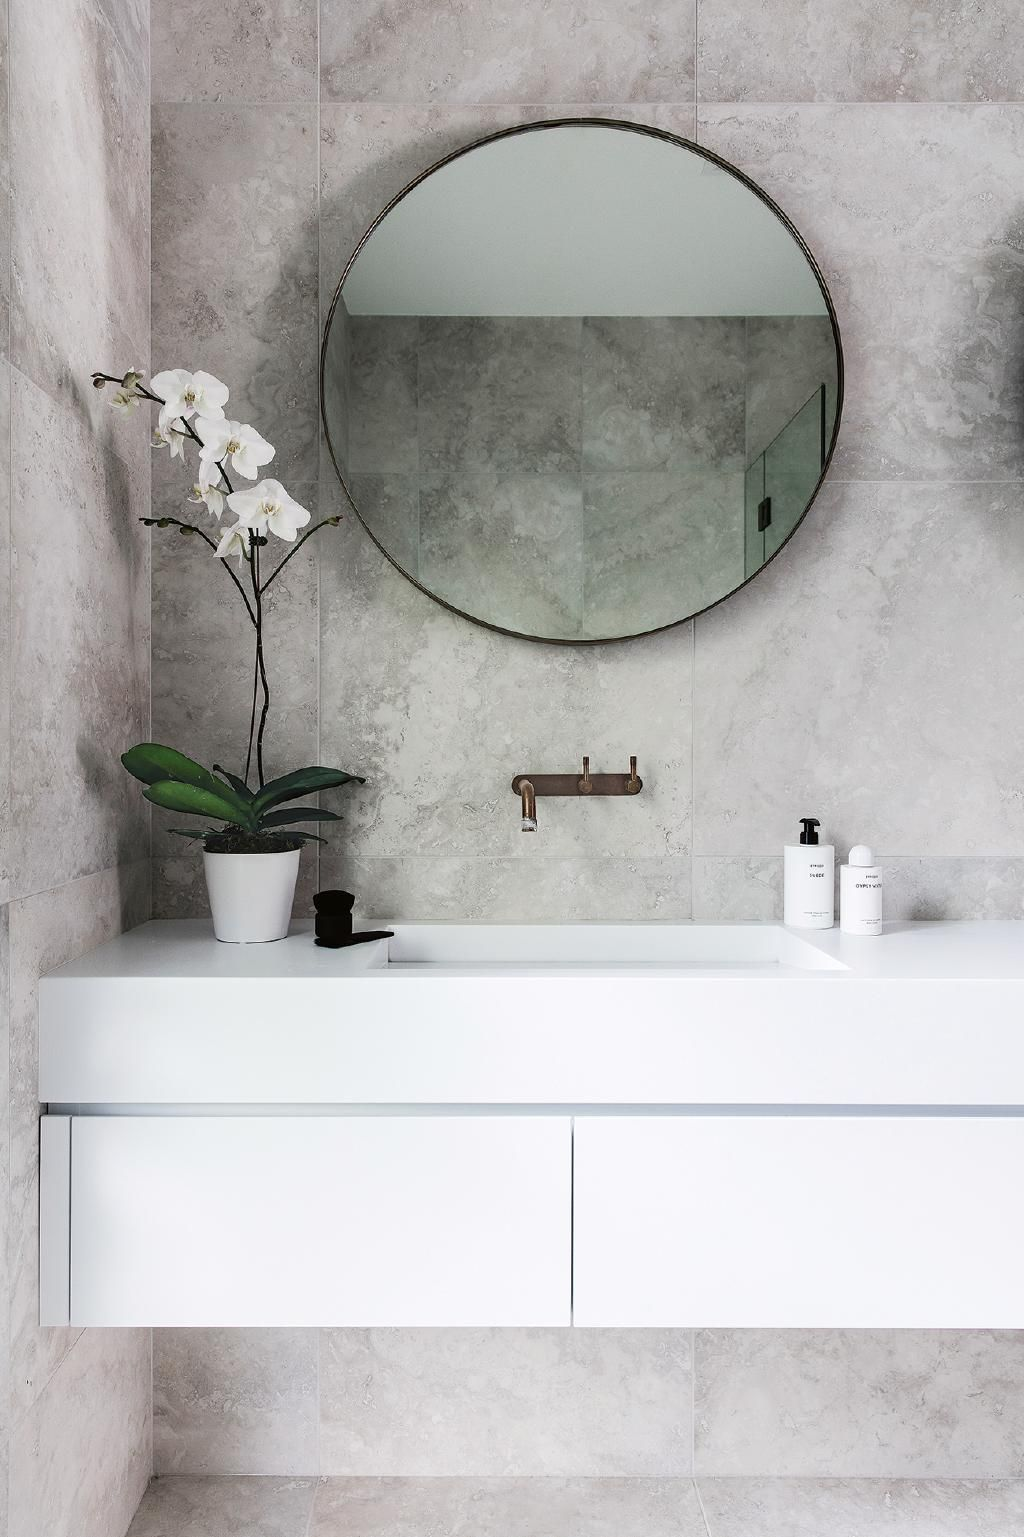 Unique Round Mirrors In Bathroom